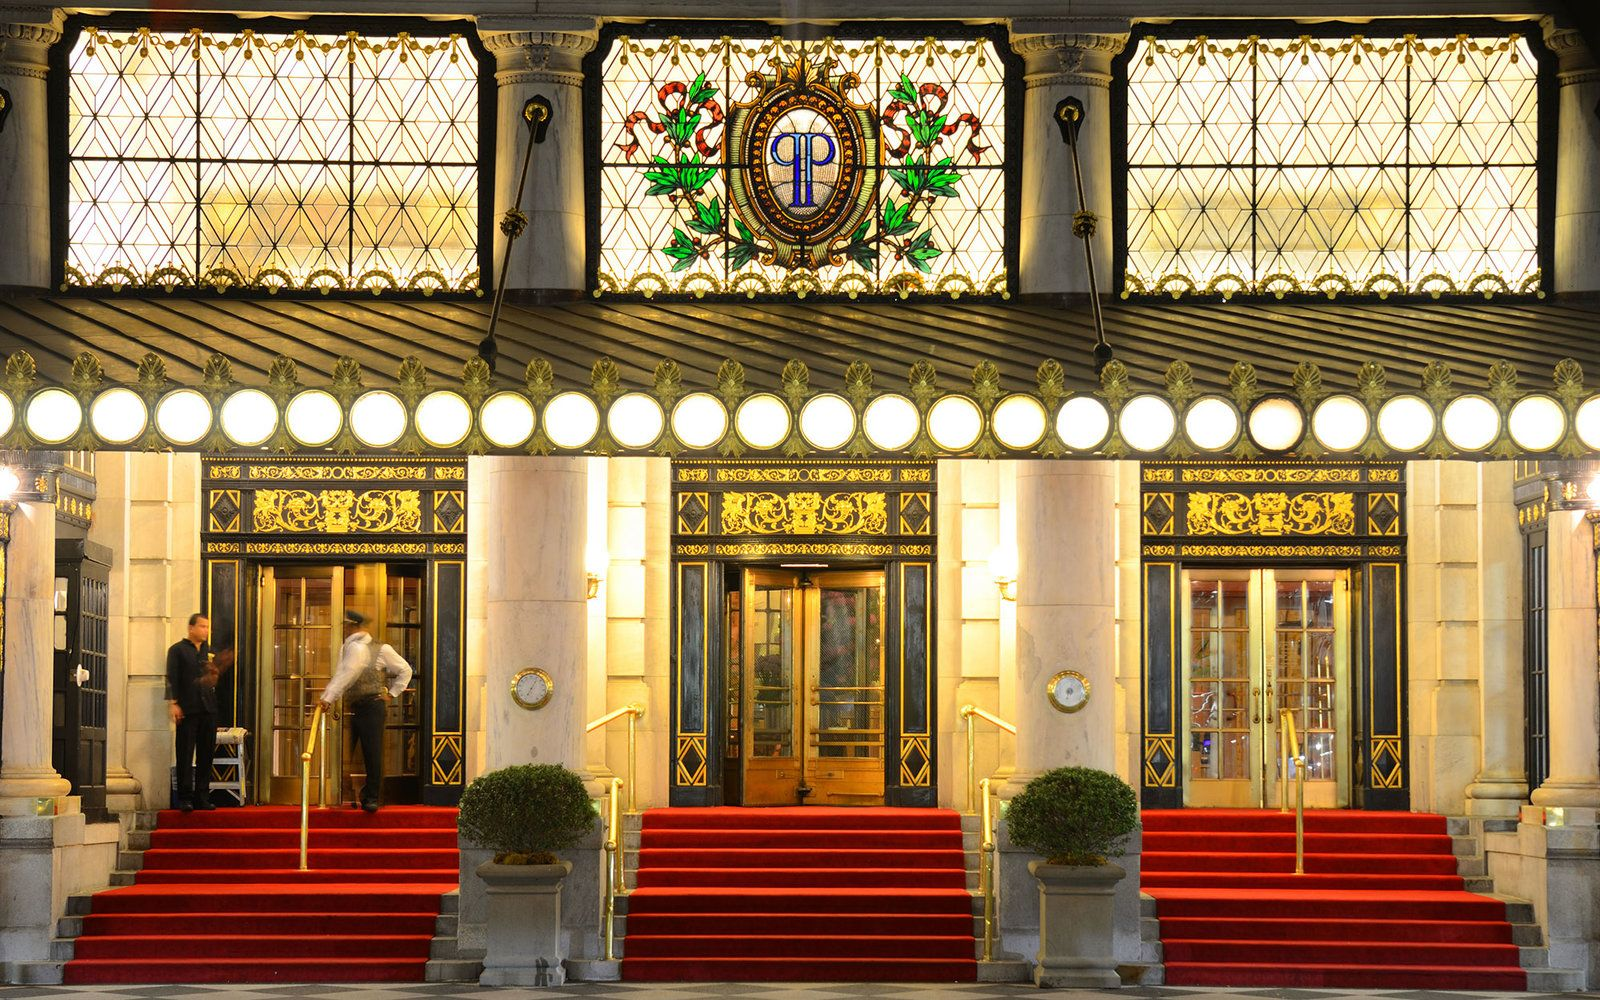 Eloise From Hell This Guest Lived In The Plaza Hotel For 35 Years Landmark Near Central Park New York